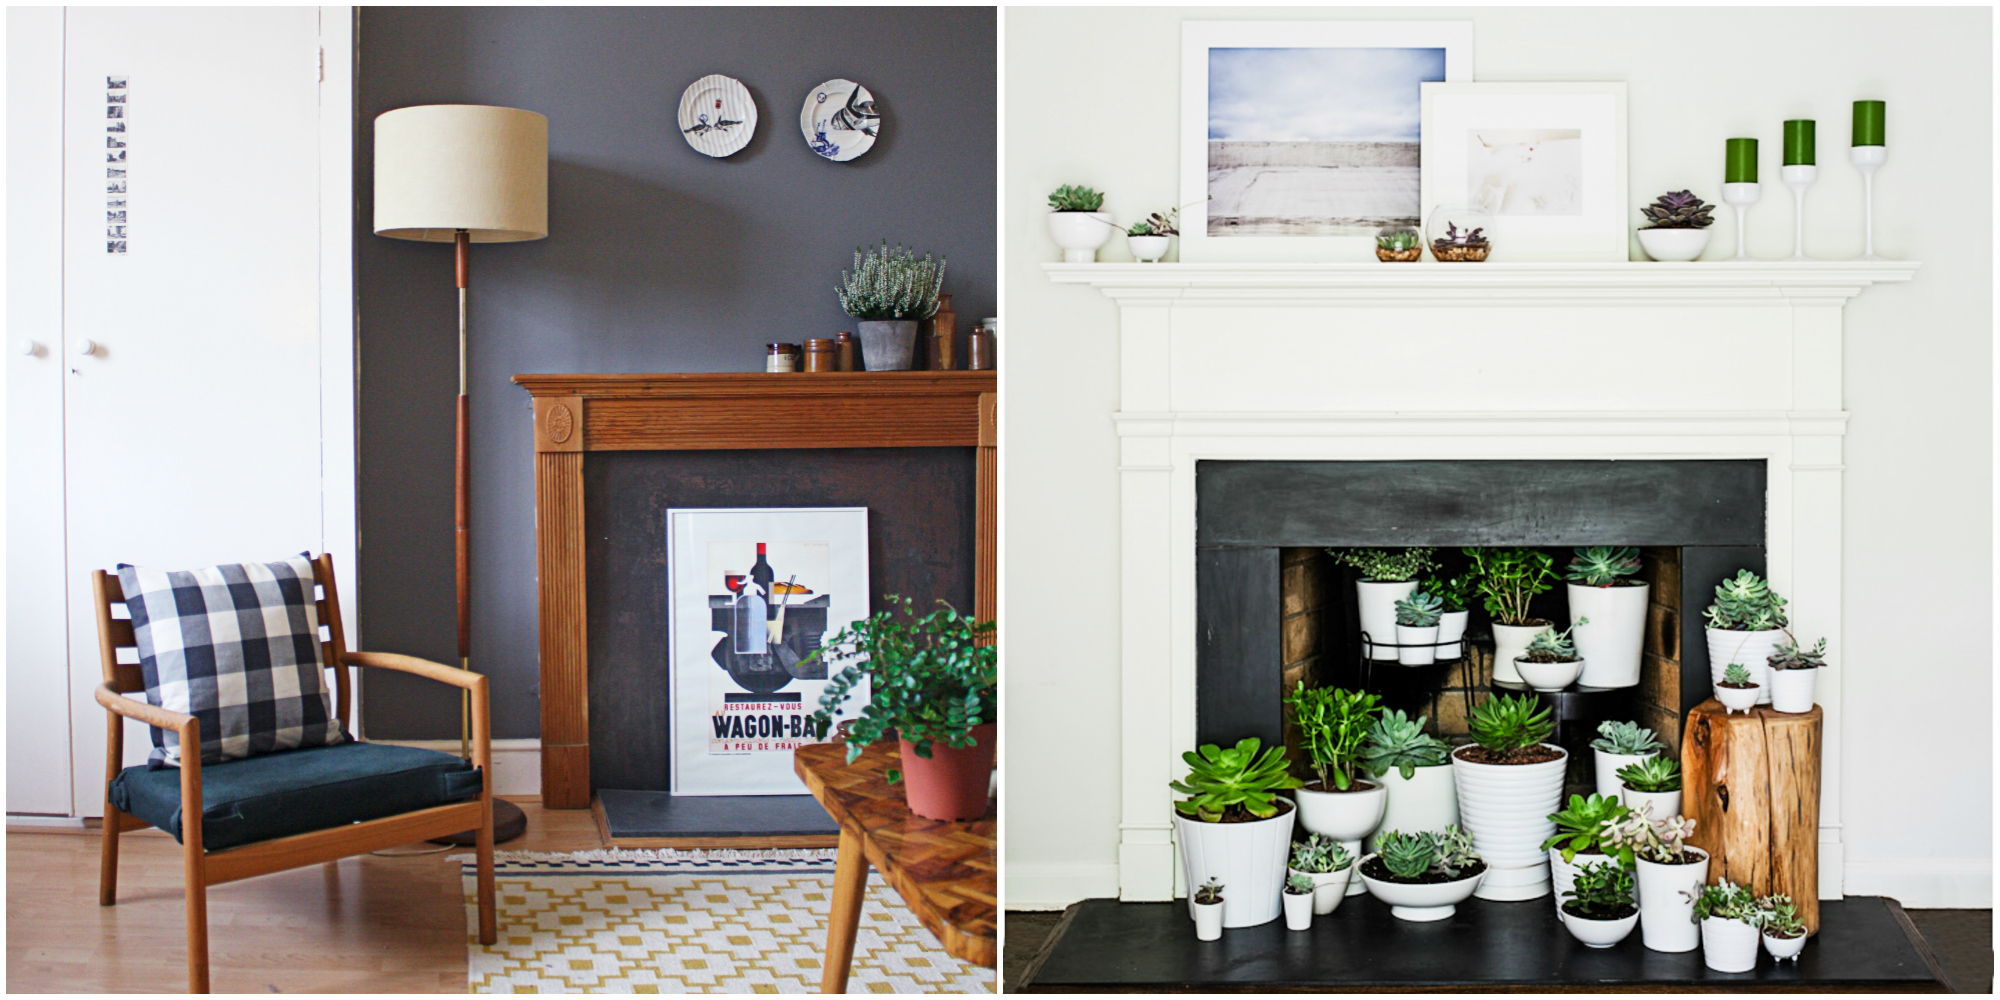 fireplace decor - designs for a faux fireplace